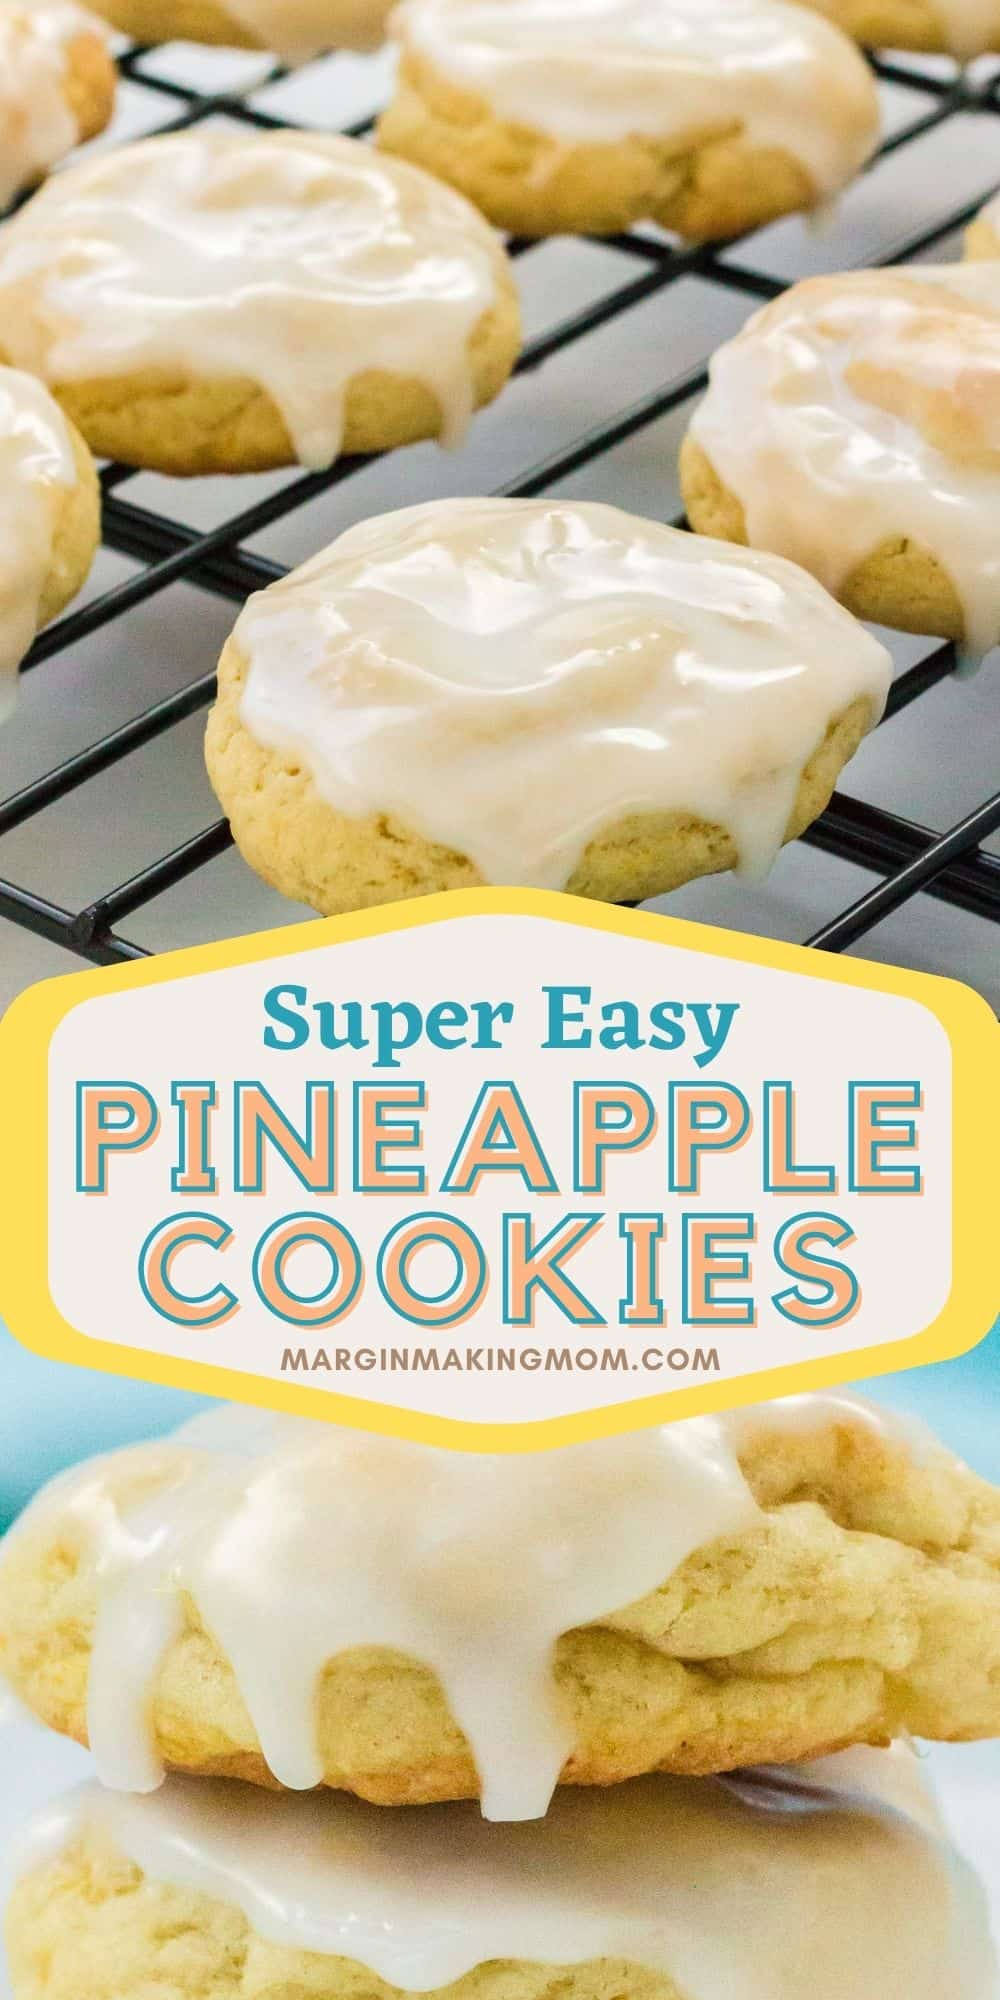 a collage image featuring two photos. One photo shows pineapple cookies on a cooling rack, while another shows close-up detail of a pineapple cookie with icing.